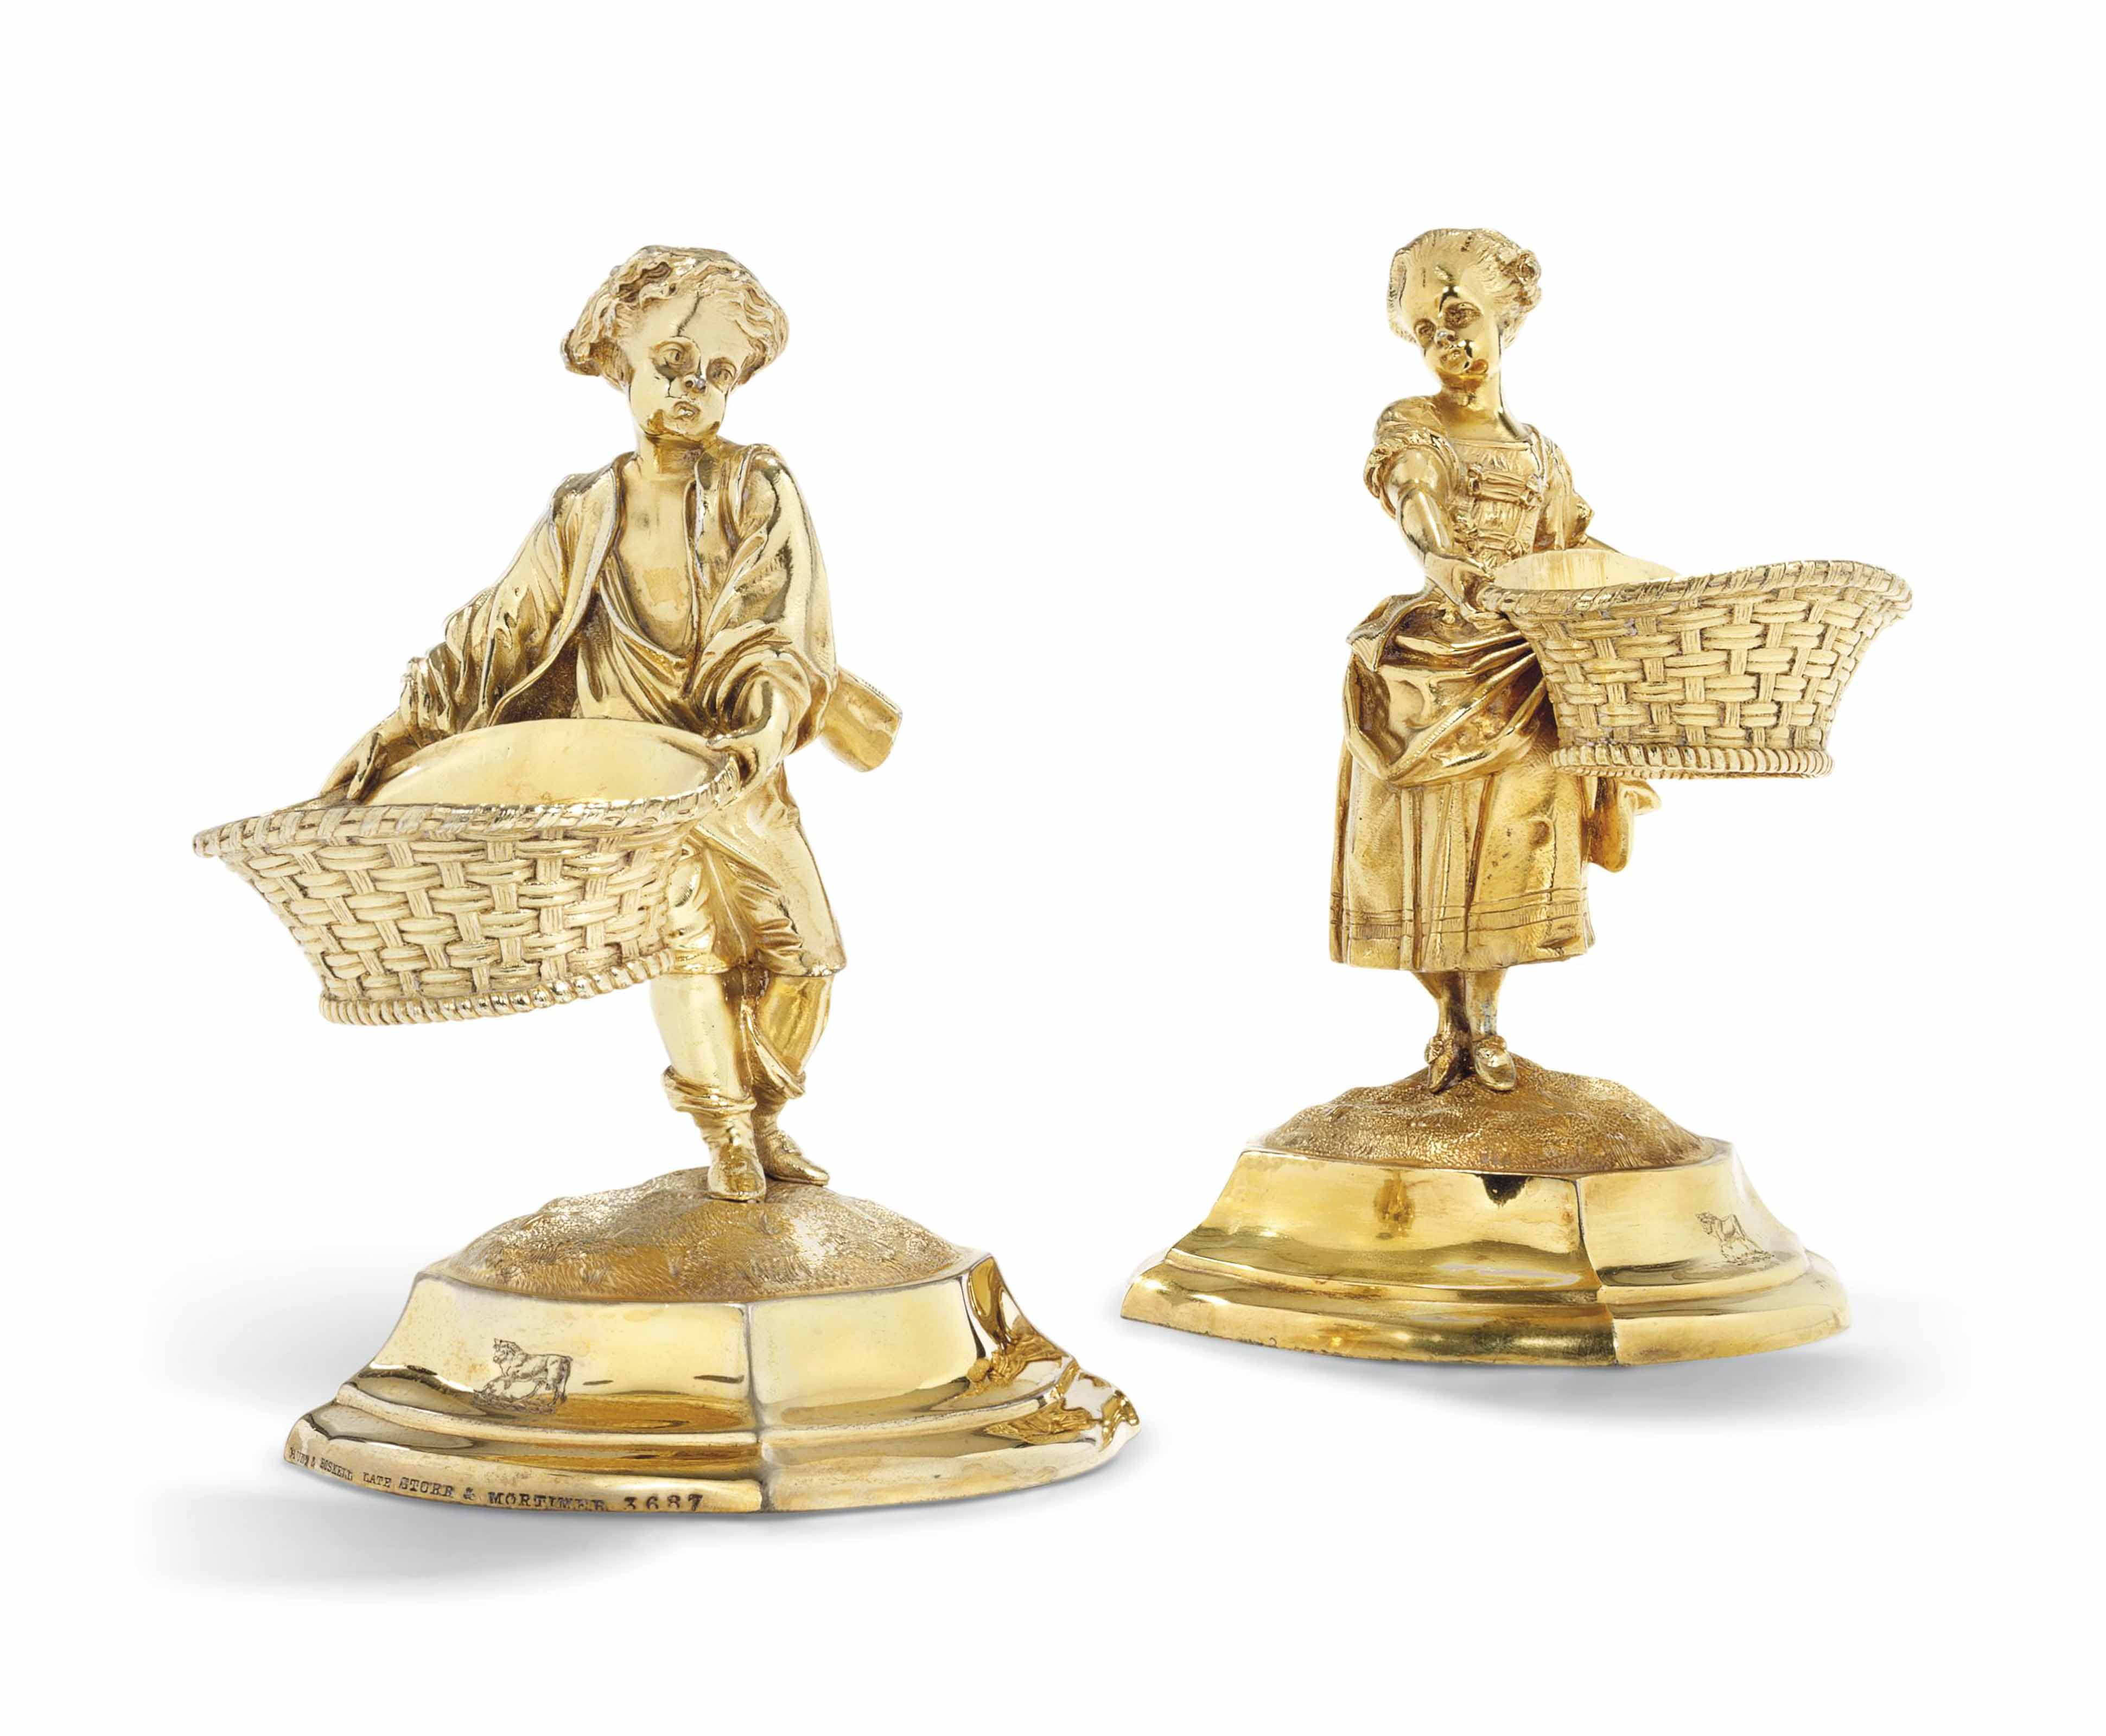 A PAIR OF VICTORIAN SILVER-GILT FIGURAL SALT-CELLARS